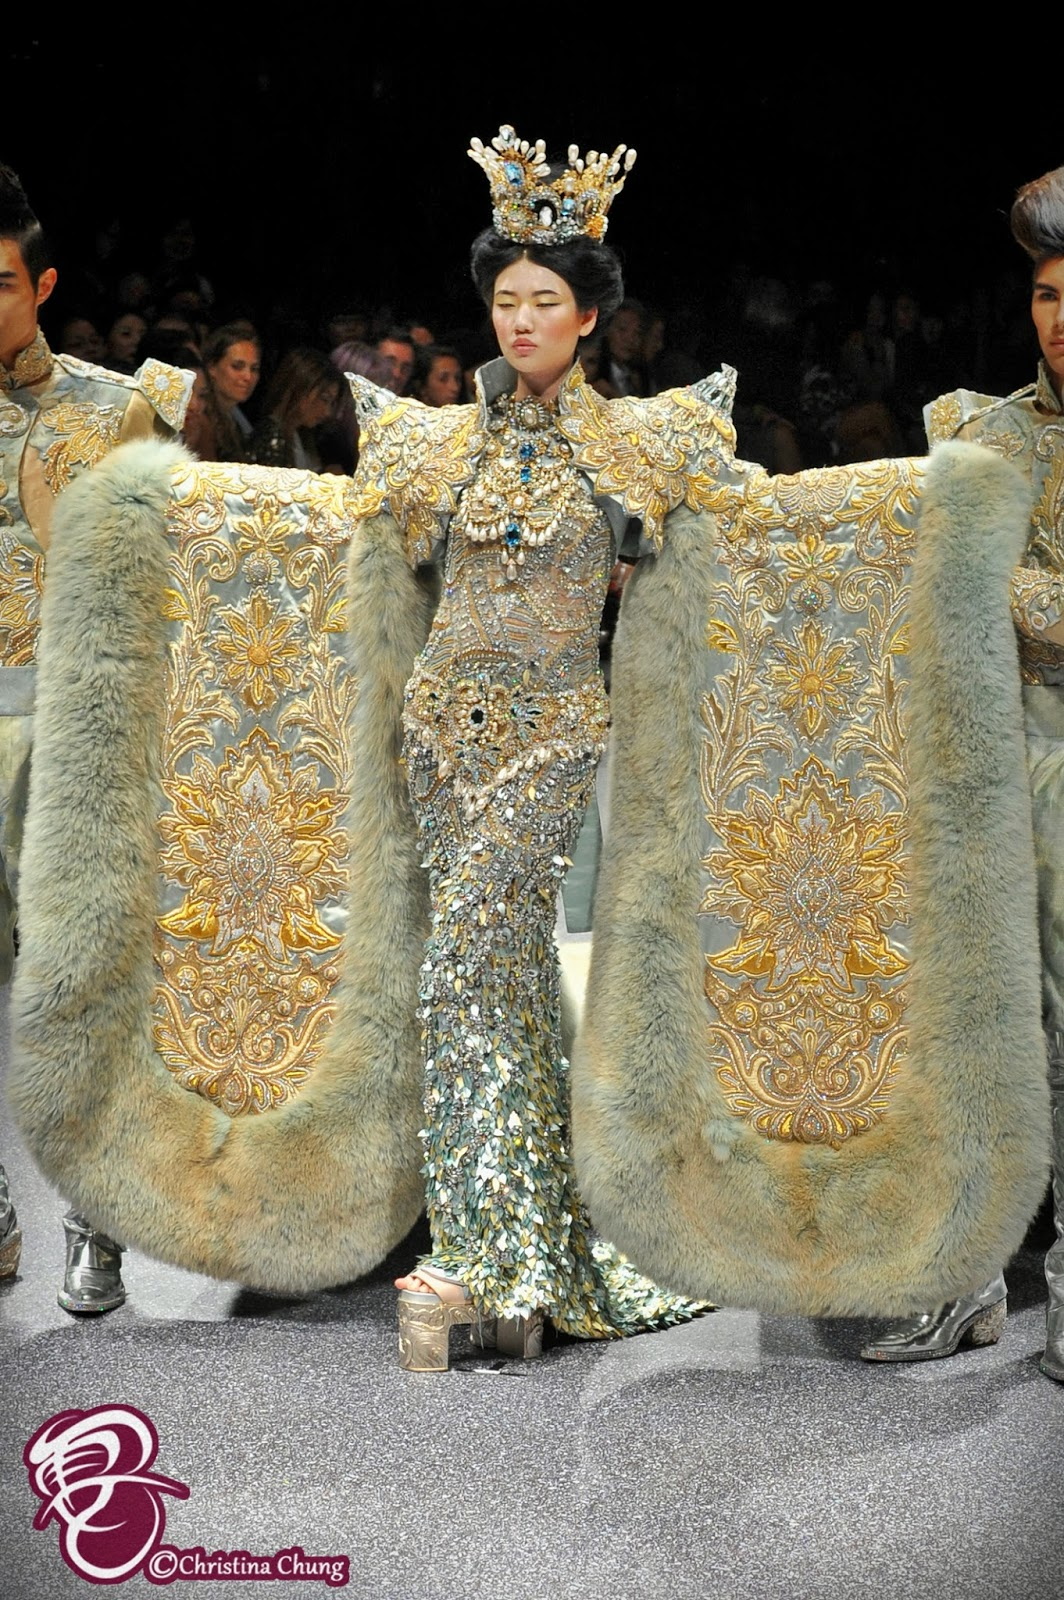 Guo Pei Stunned The Au nce With Her Arabian 1002th Night Haute Couture Fash